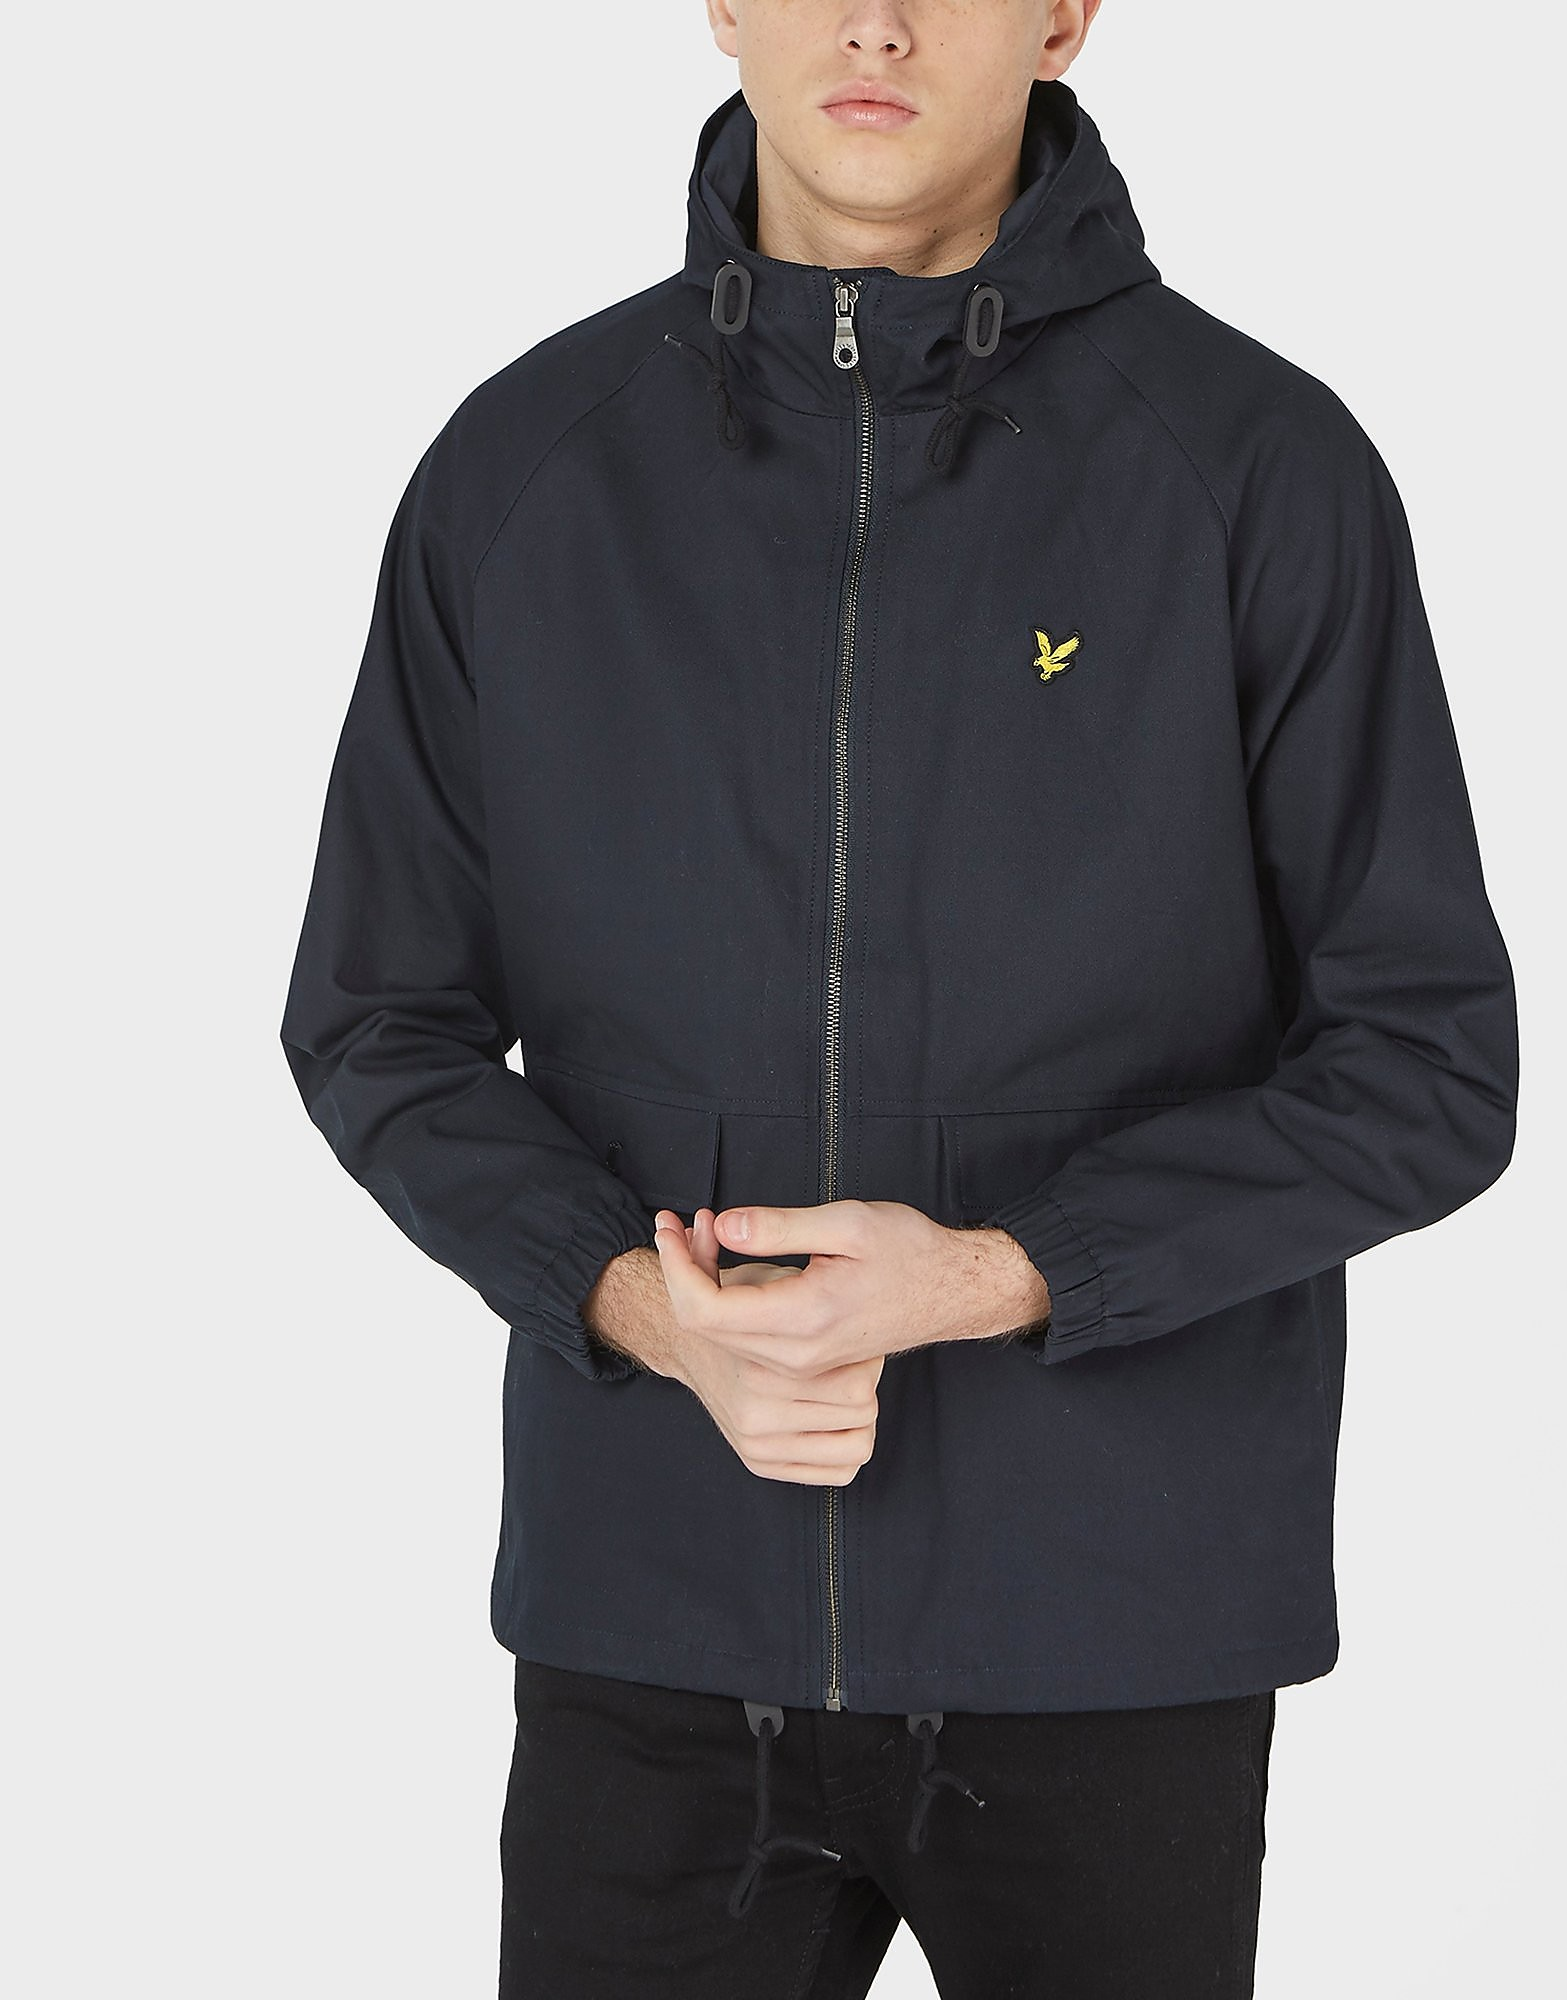 Lyle & Scott Full-Zip Hooded Lightweight Jacket